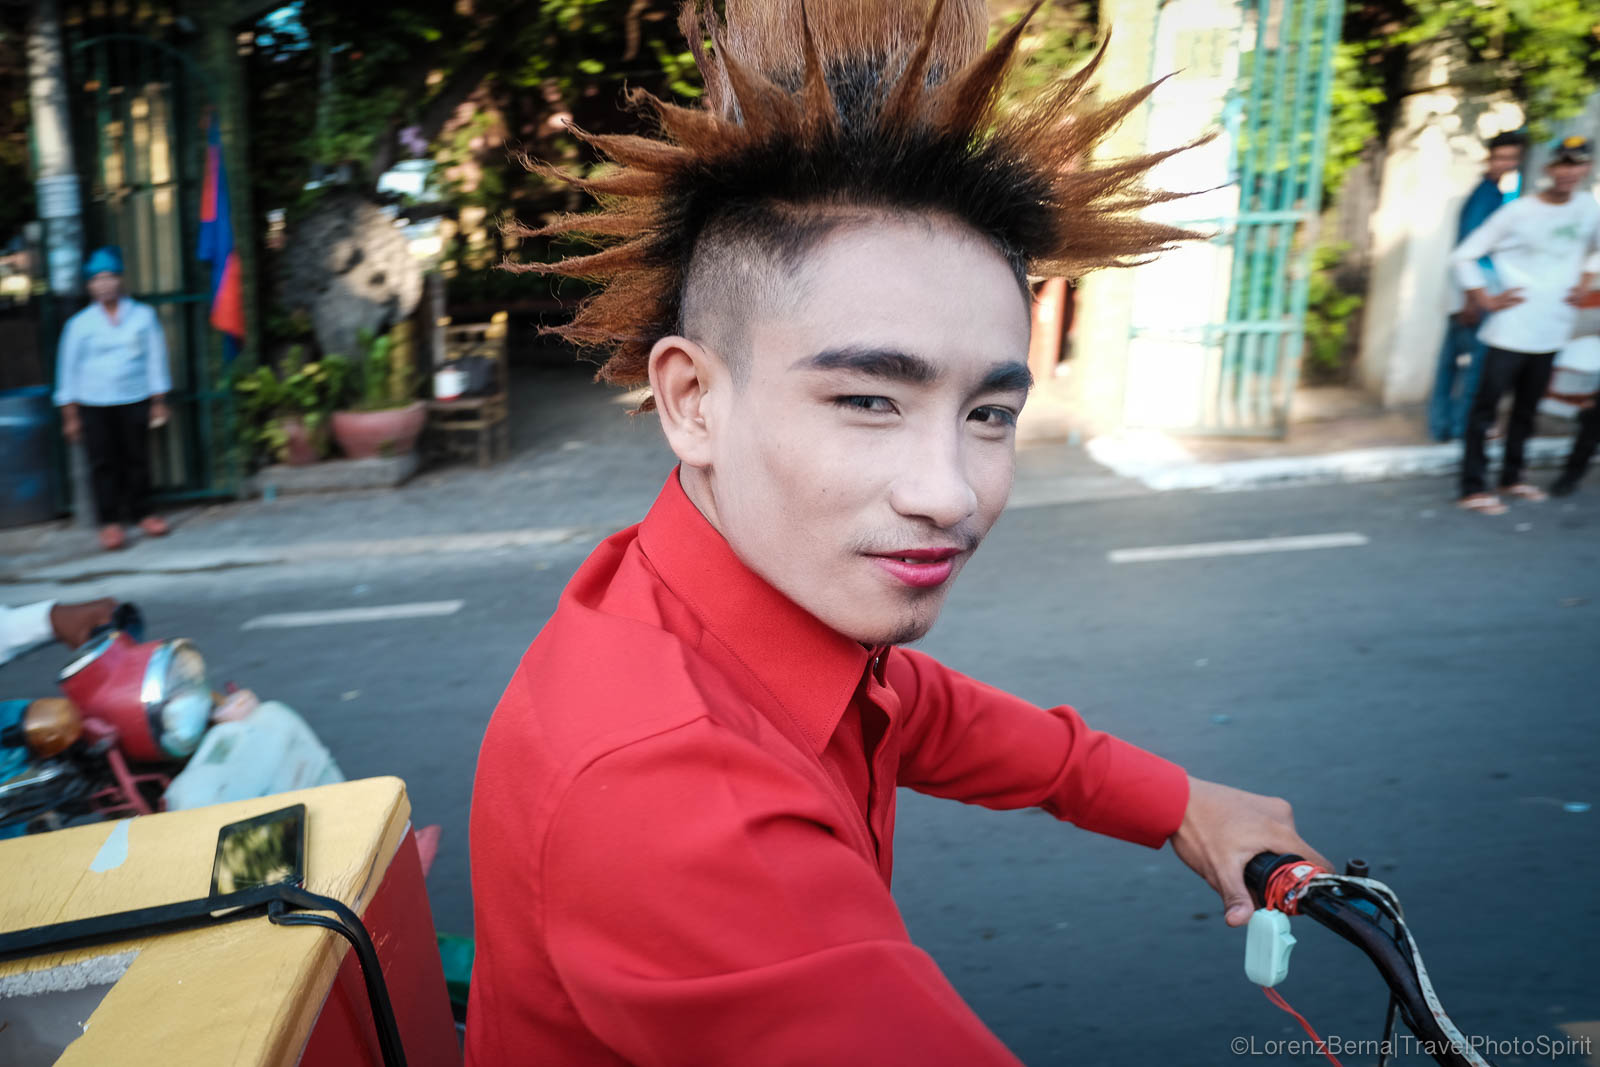 Punk man in Phnom Penh, Cambodia